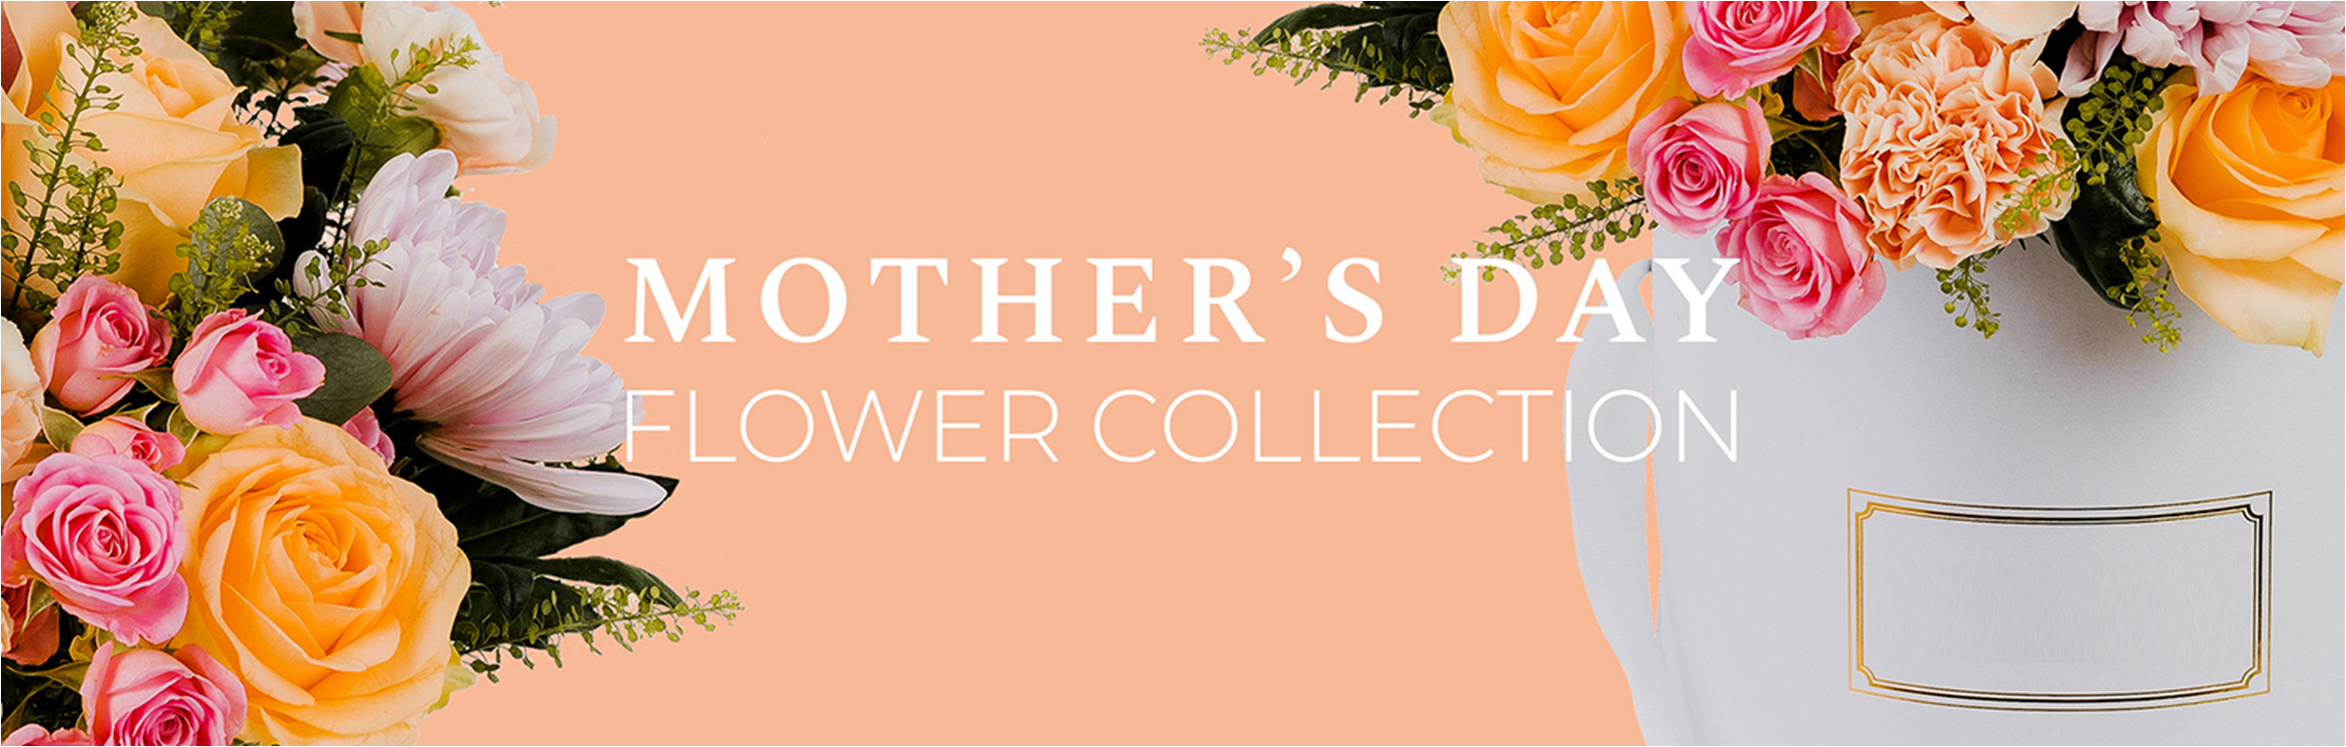 79912-angies-floral-designs-mothers-day-collection-flower-79912-angies-flowers-flores-de-mama-el-paso-florist.png